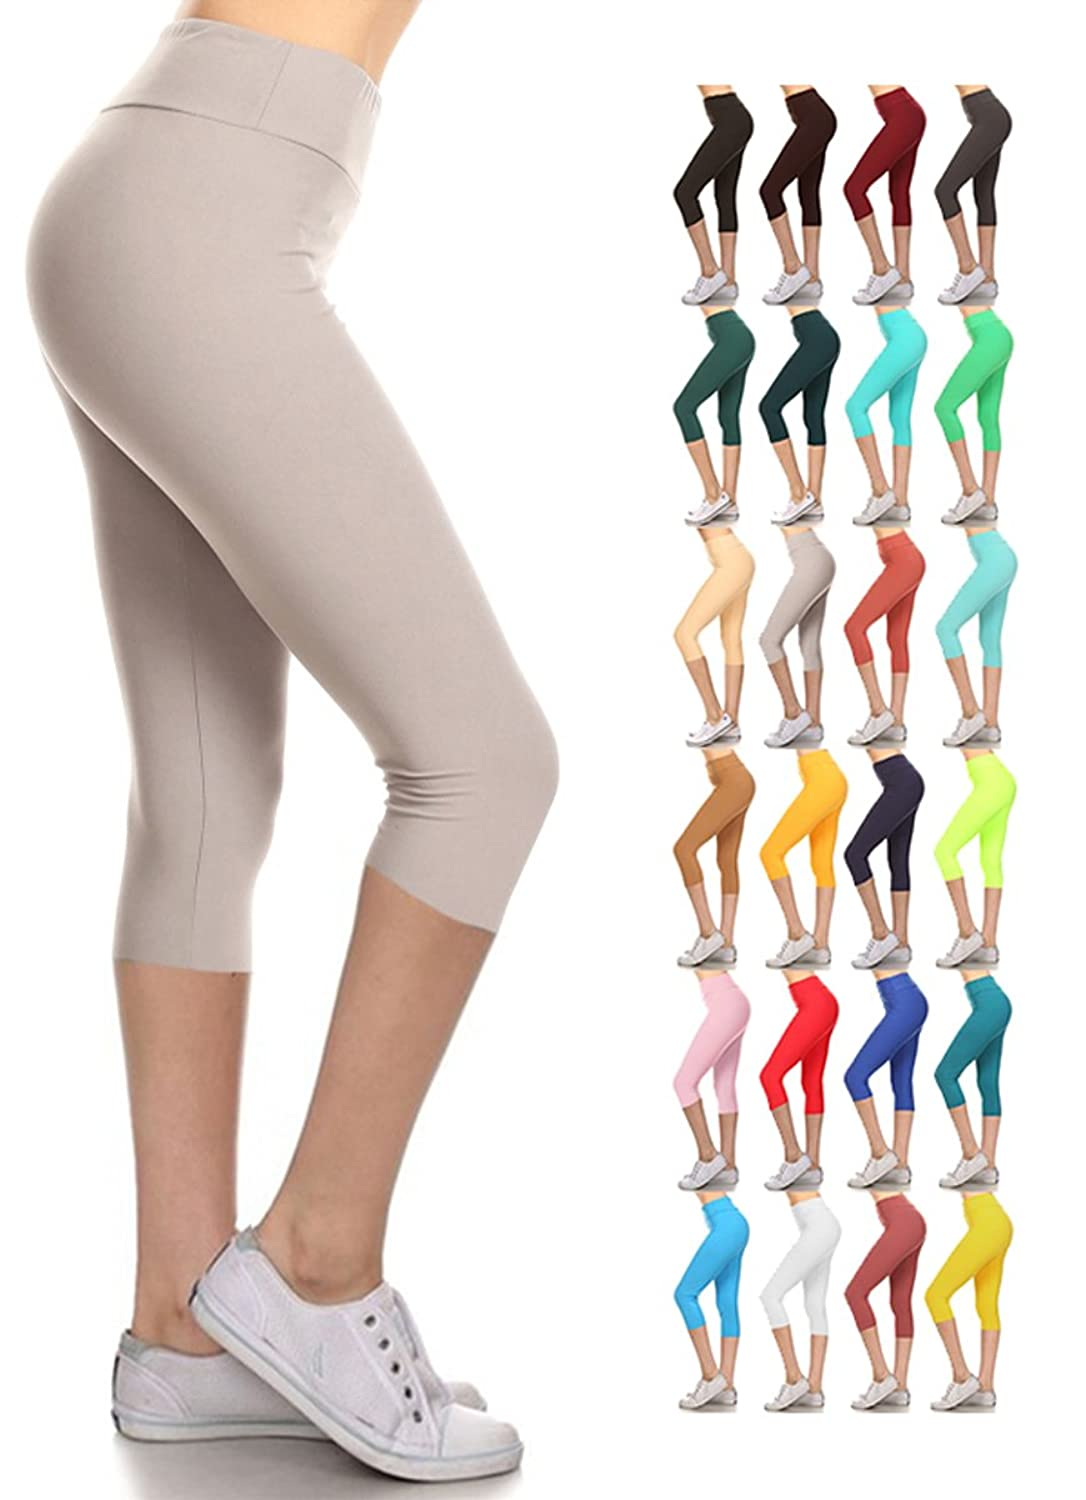 7dbac07b7ea4b Essential comfort and stylish Yoga Cropped Capri leggings perfect for  workout, gym, and everyday wear! Machine Wash Cold / Hang Dry